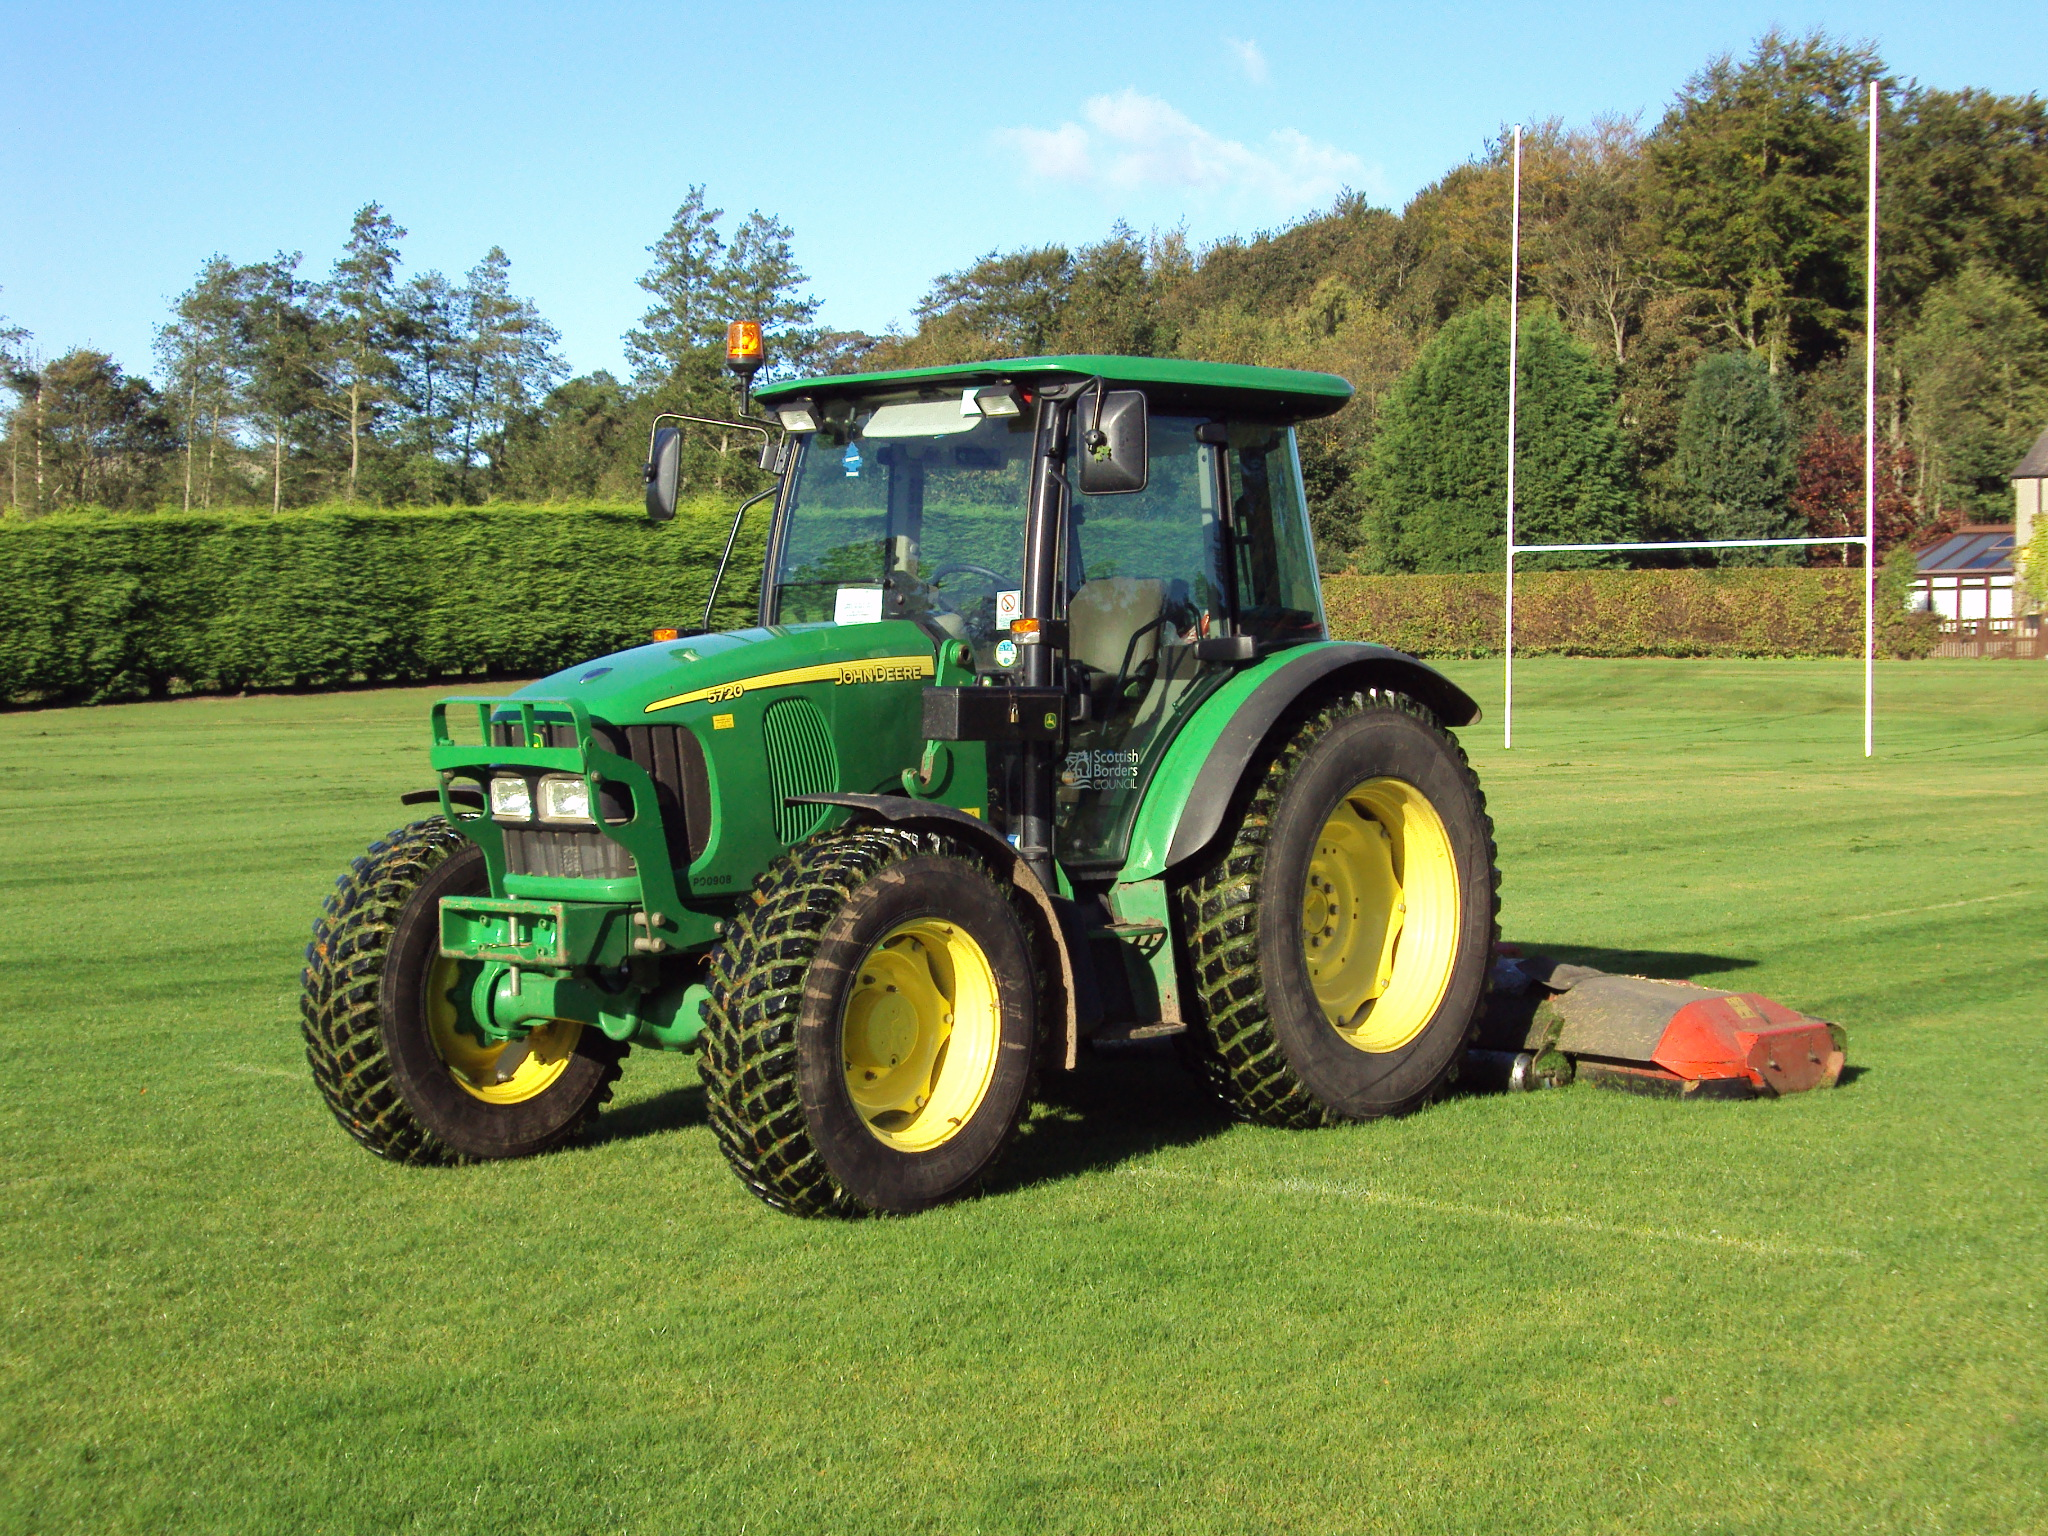 List Of John Deere Tractors Tractor Construction Plant Wiki 180 Wiring Diagram In Addition 445 Lawn Fandom Powered By Wikia